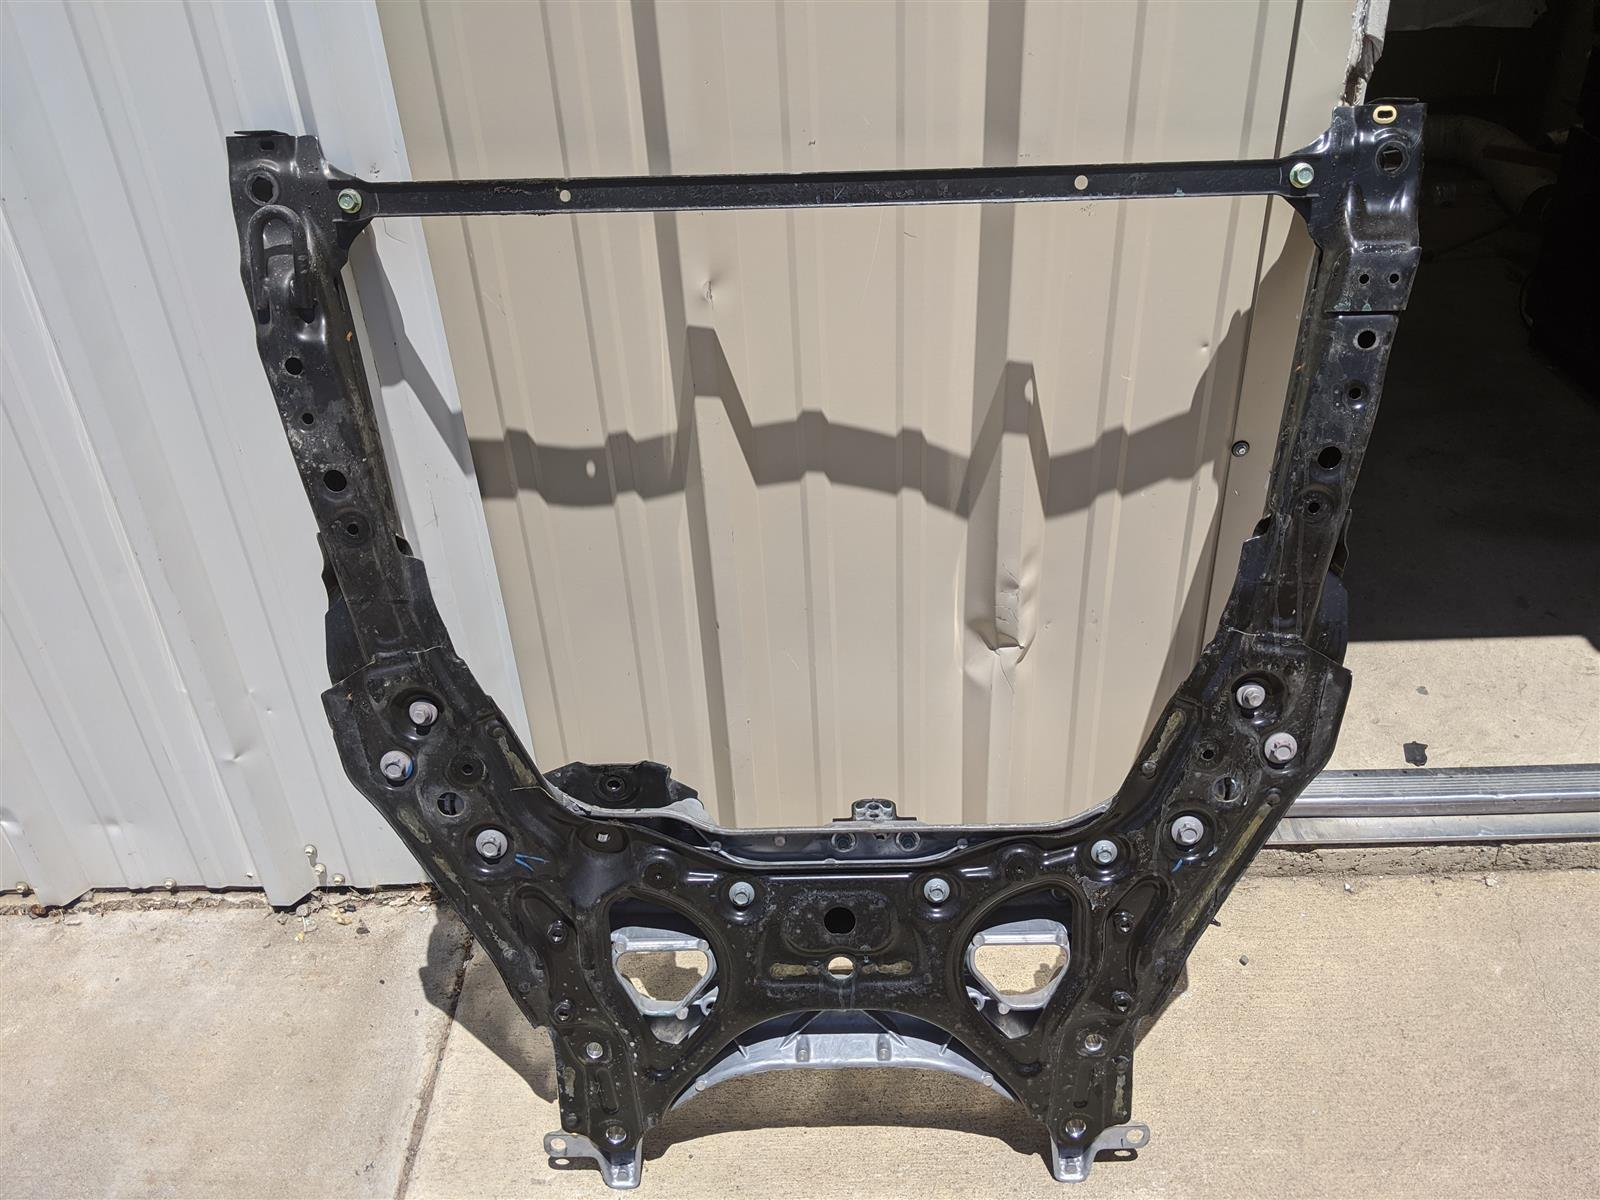 2018 Honda Accord Front Subframe Engine Cradle Beam Replacement